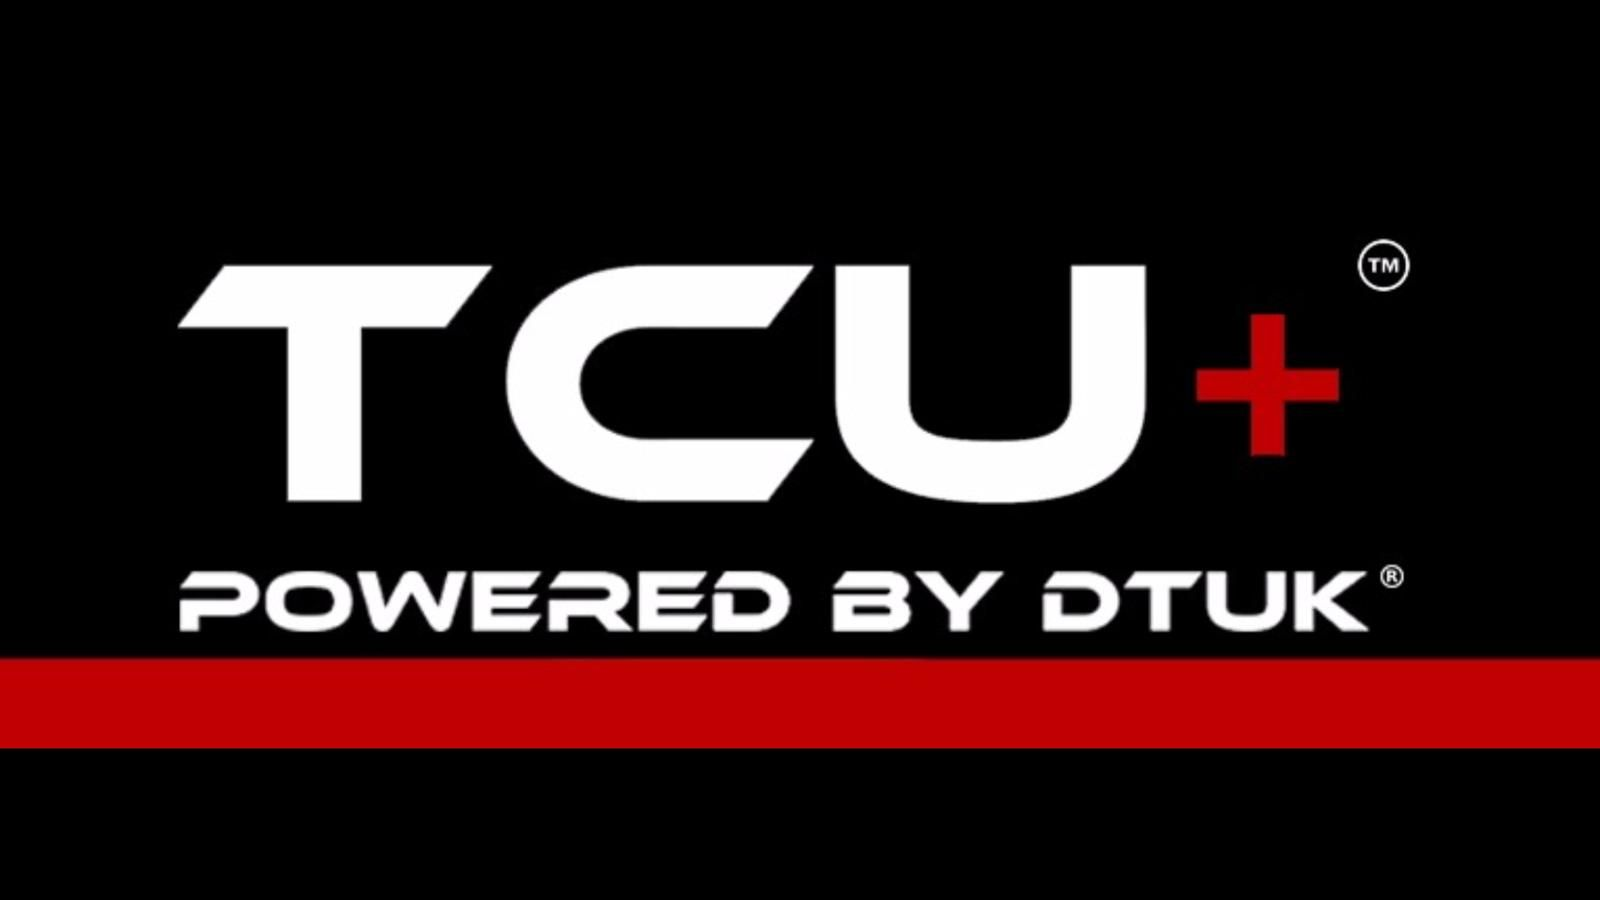 DTUK® TCU+ Gearbox Flash For: Car CUPRA LEON ST 300 from 2018 onwards 2 0  TSI, 300PS/221kW, 1984 ccm - DTUK Performance